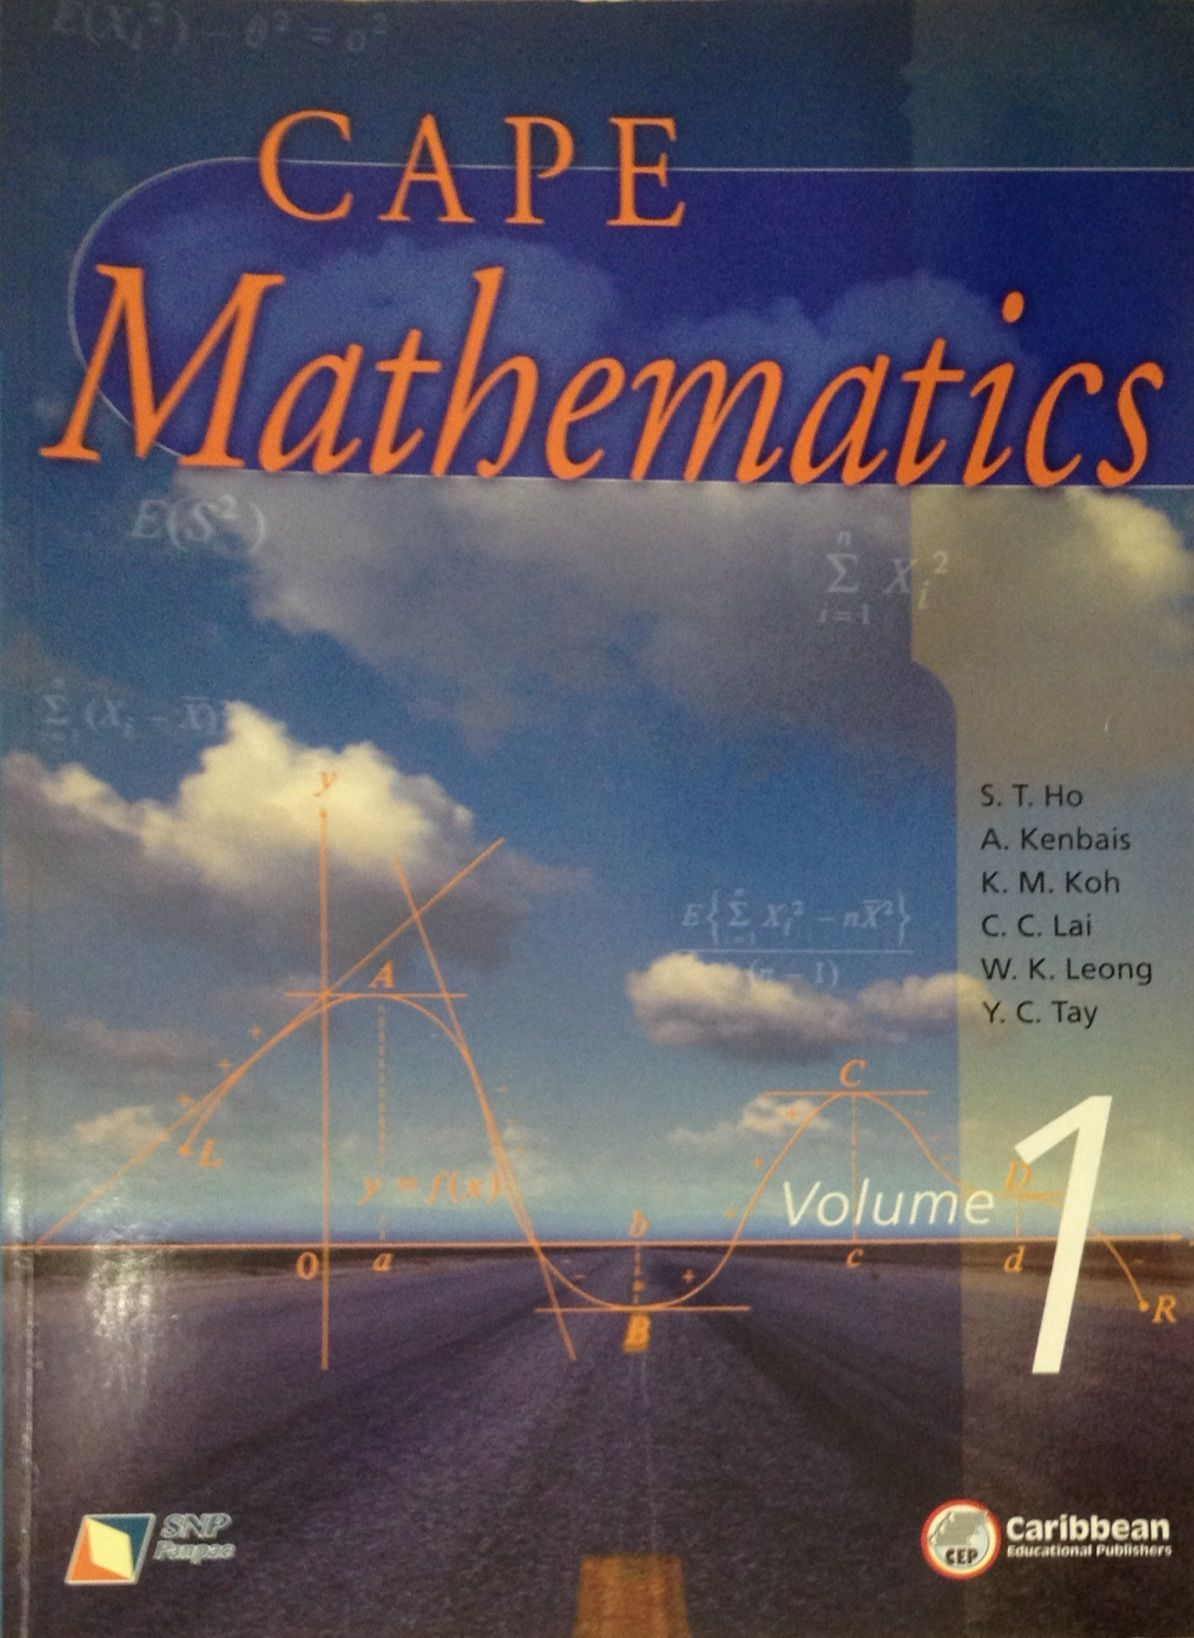 A Singapore-published grade 11 math textbook I edited for the